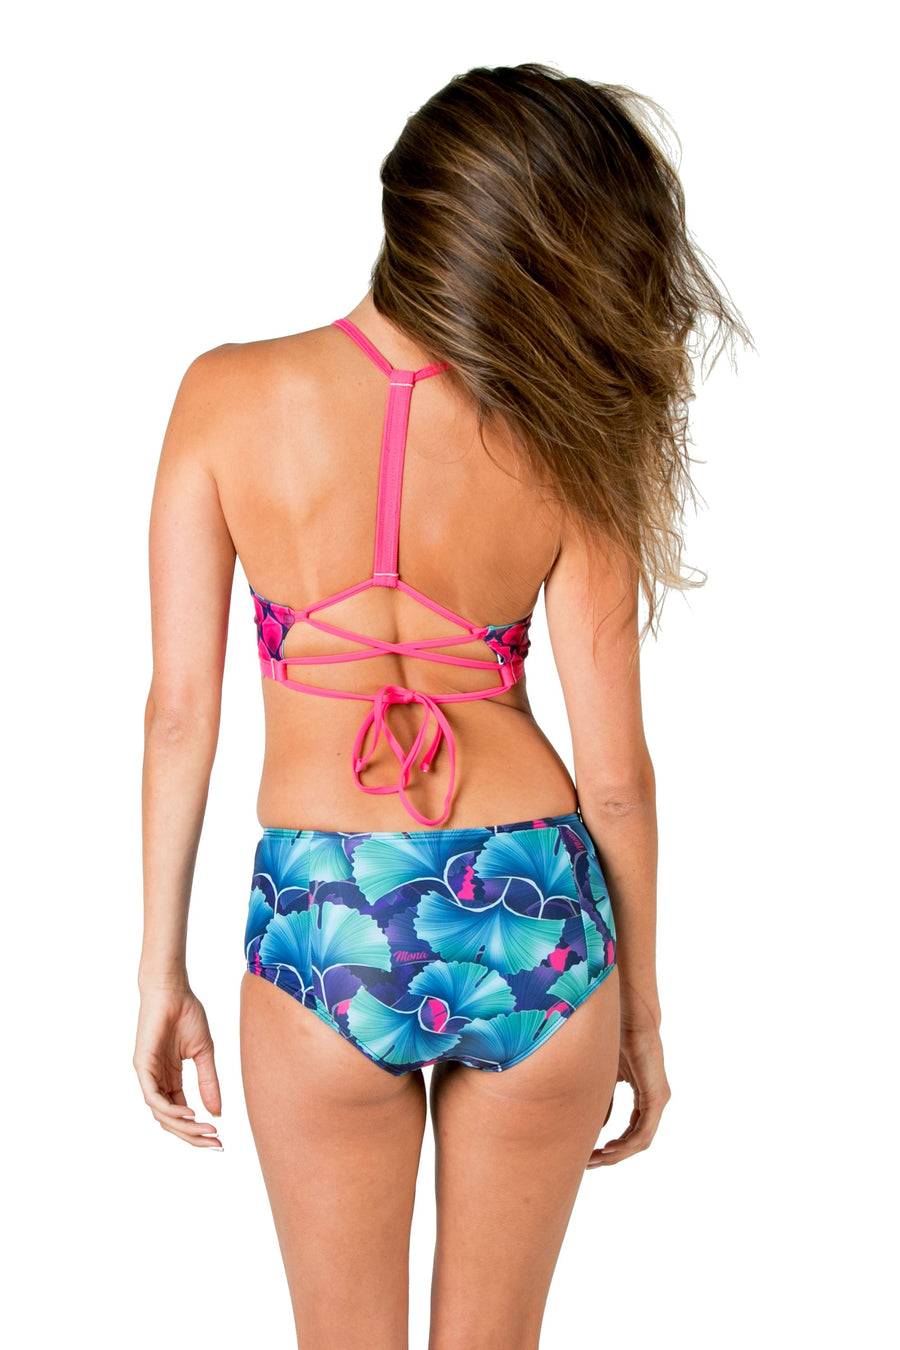 Beach Bum High Waisted Bikini Bottoms (Ginko Garden) Swim and Surf Bottoms Mona